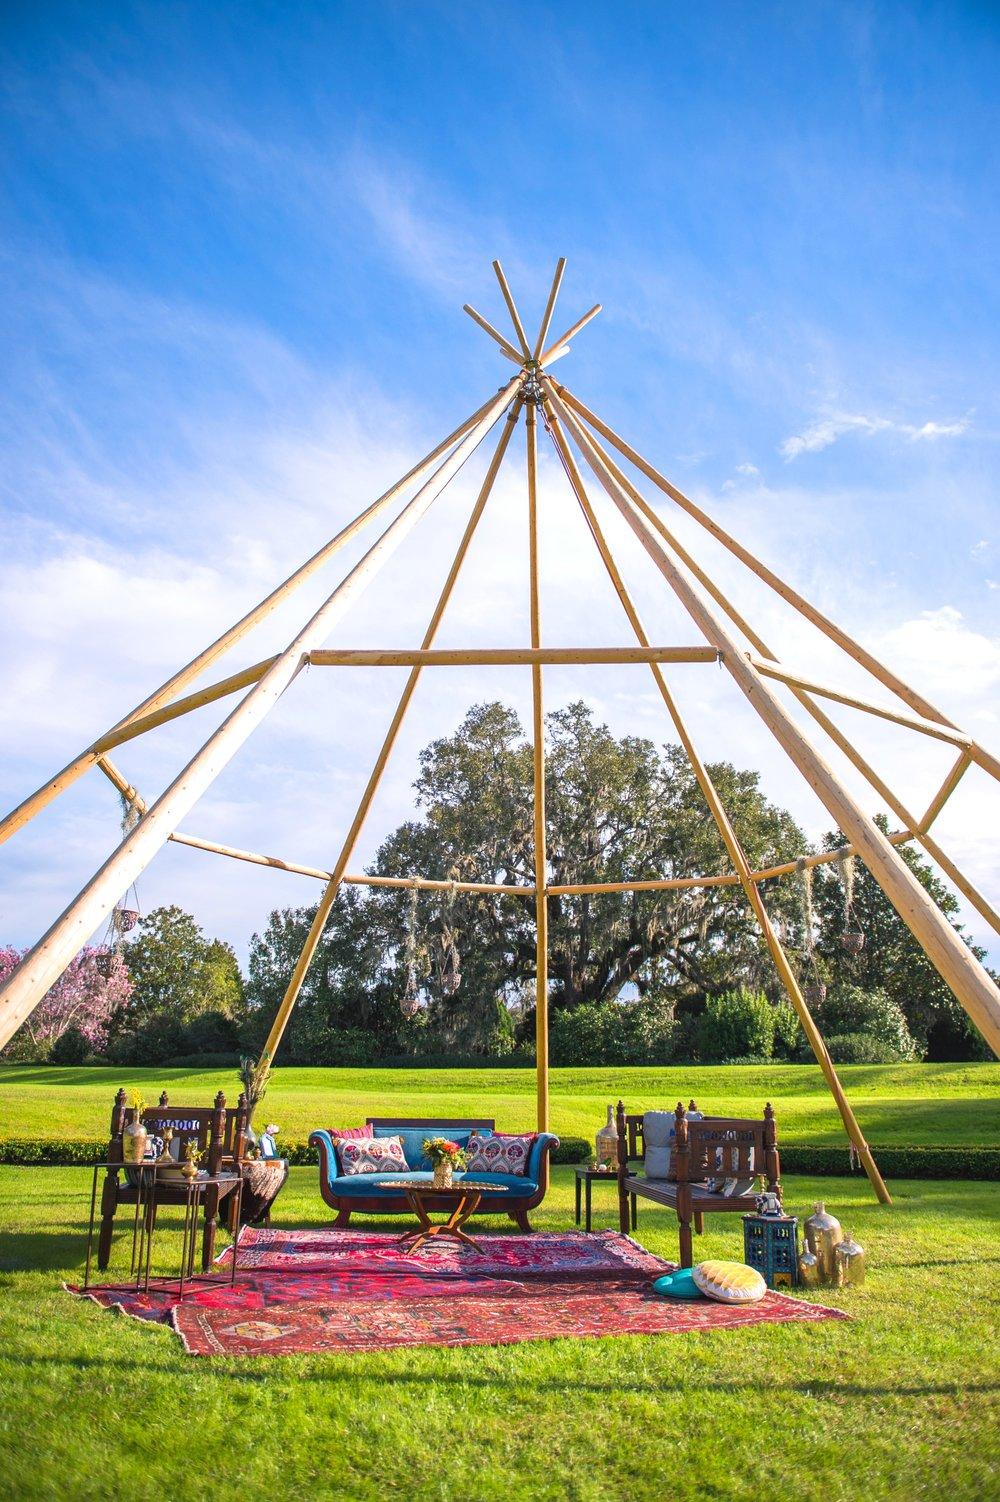 Featured Frenchie Rentals : Indigo Velvet Sofa, Farah Moroccan Benches, African Drum Table, Moroccan Brass Tray Table, Nesting Indian Side Tables, Assorted Persian Rugs, Assorted Pillows + Decor  Tipi Rental: Indah Events